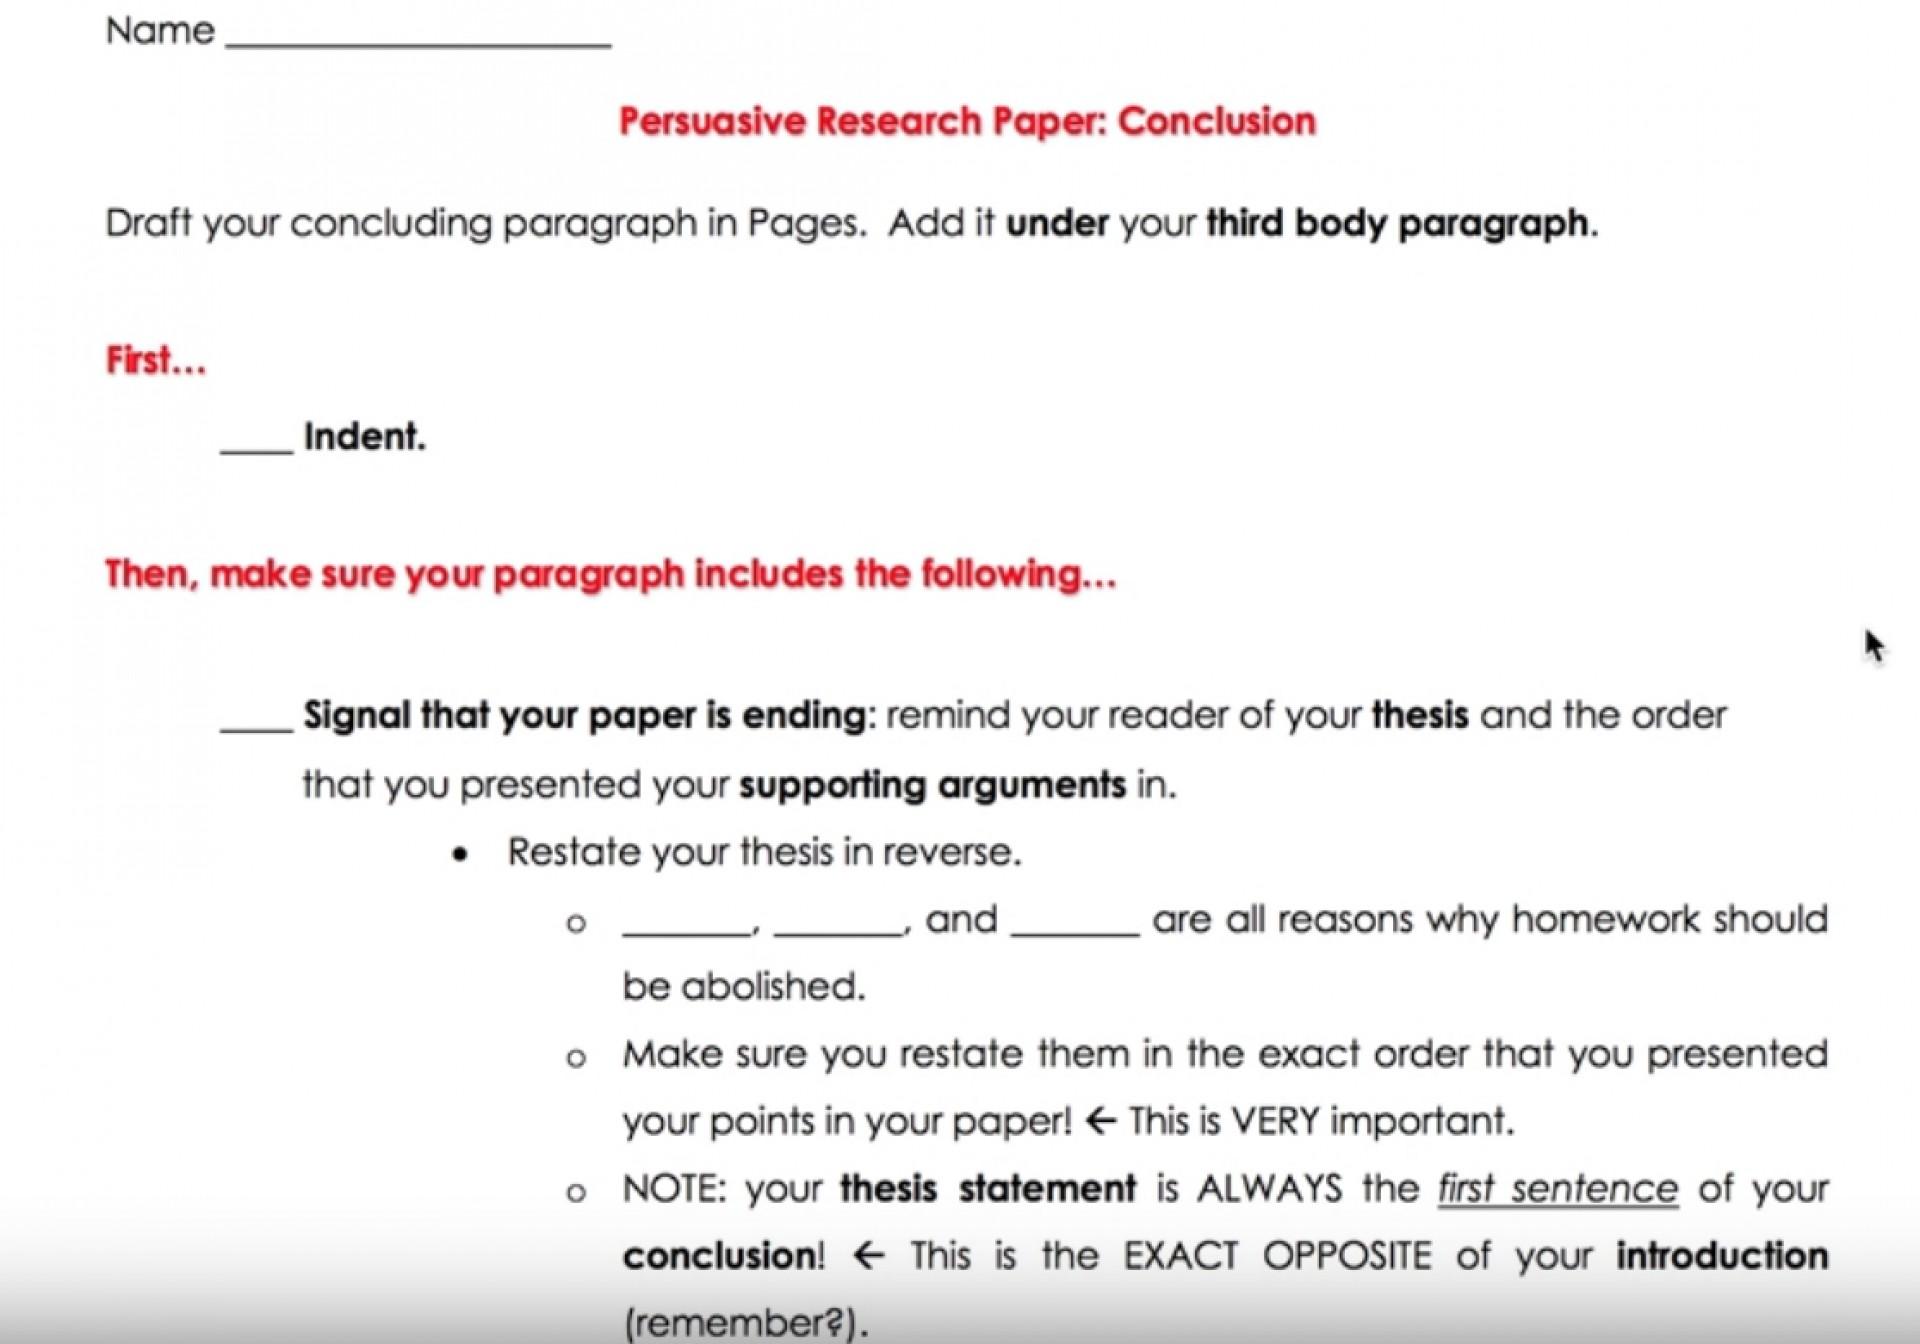 013 How To Write Conclusion Paragraph Research Paper Best A Good For 1920